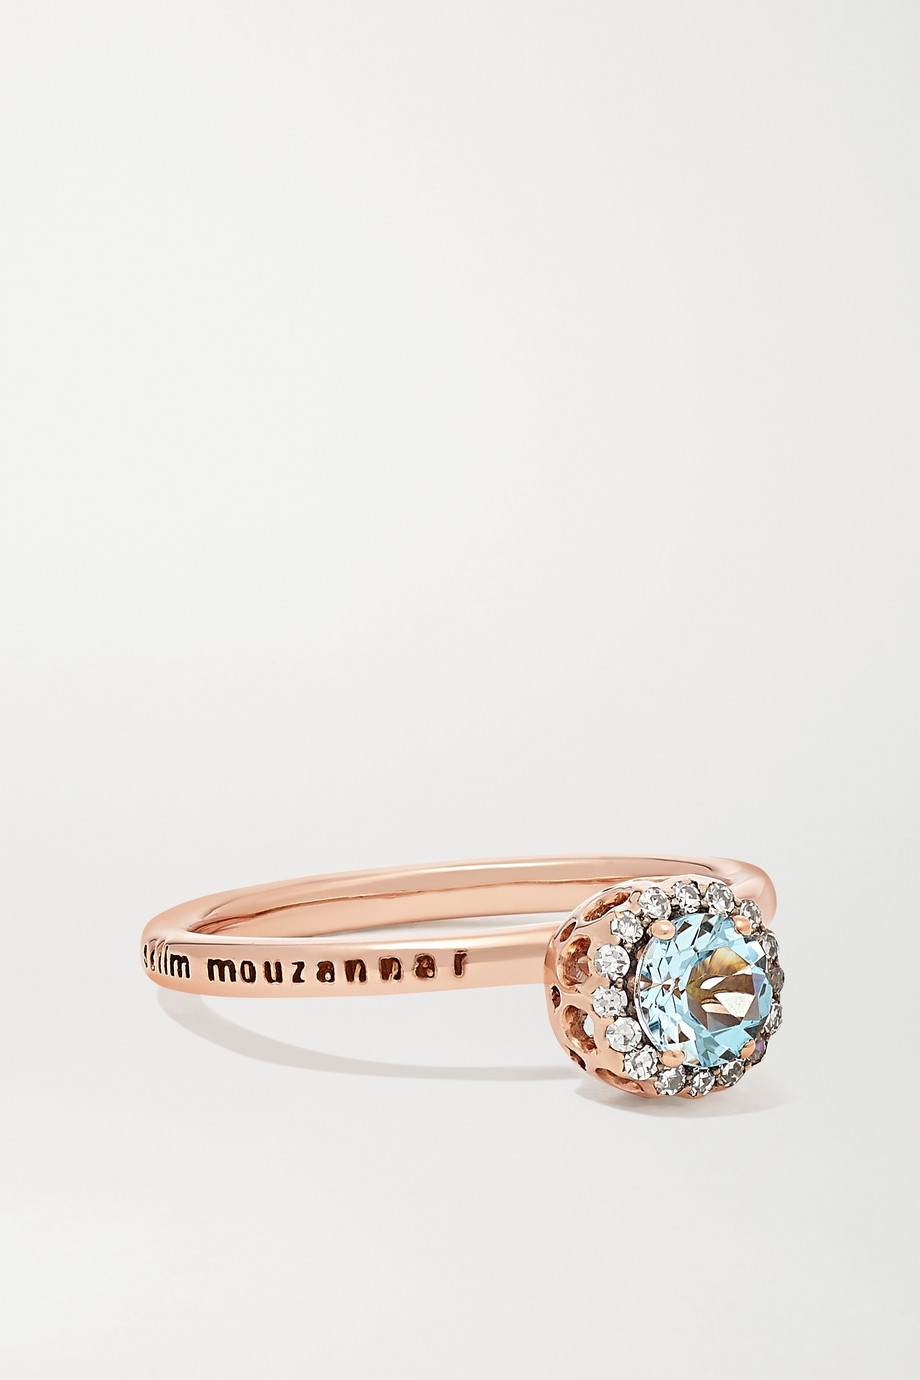 Selim Mouzannar Bague en or rose 18 carats, aigue-marine et diamants Beirut Basic